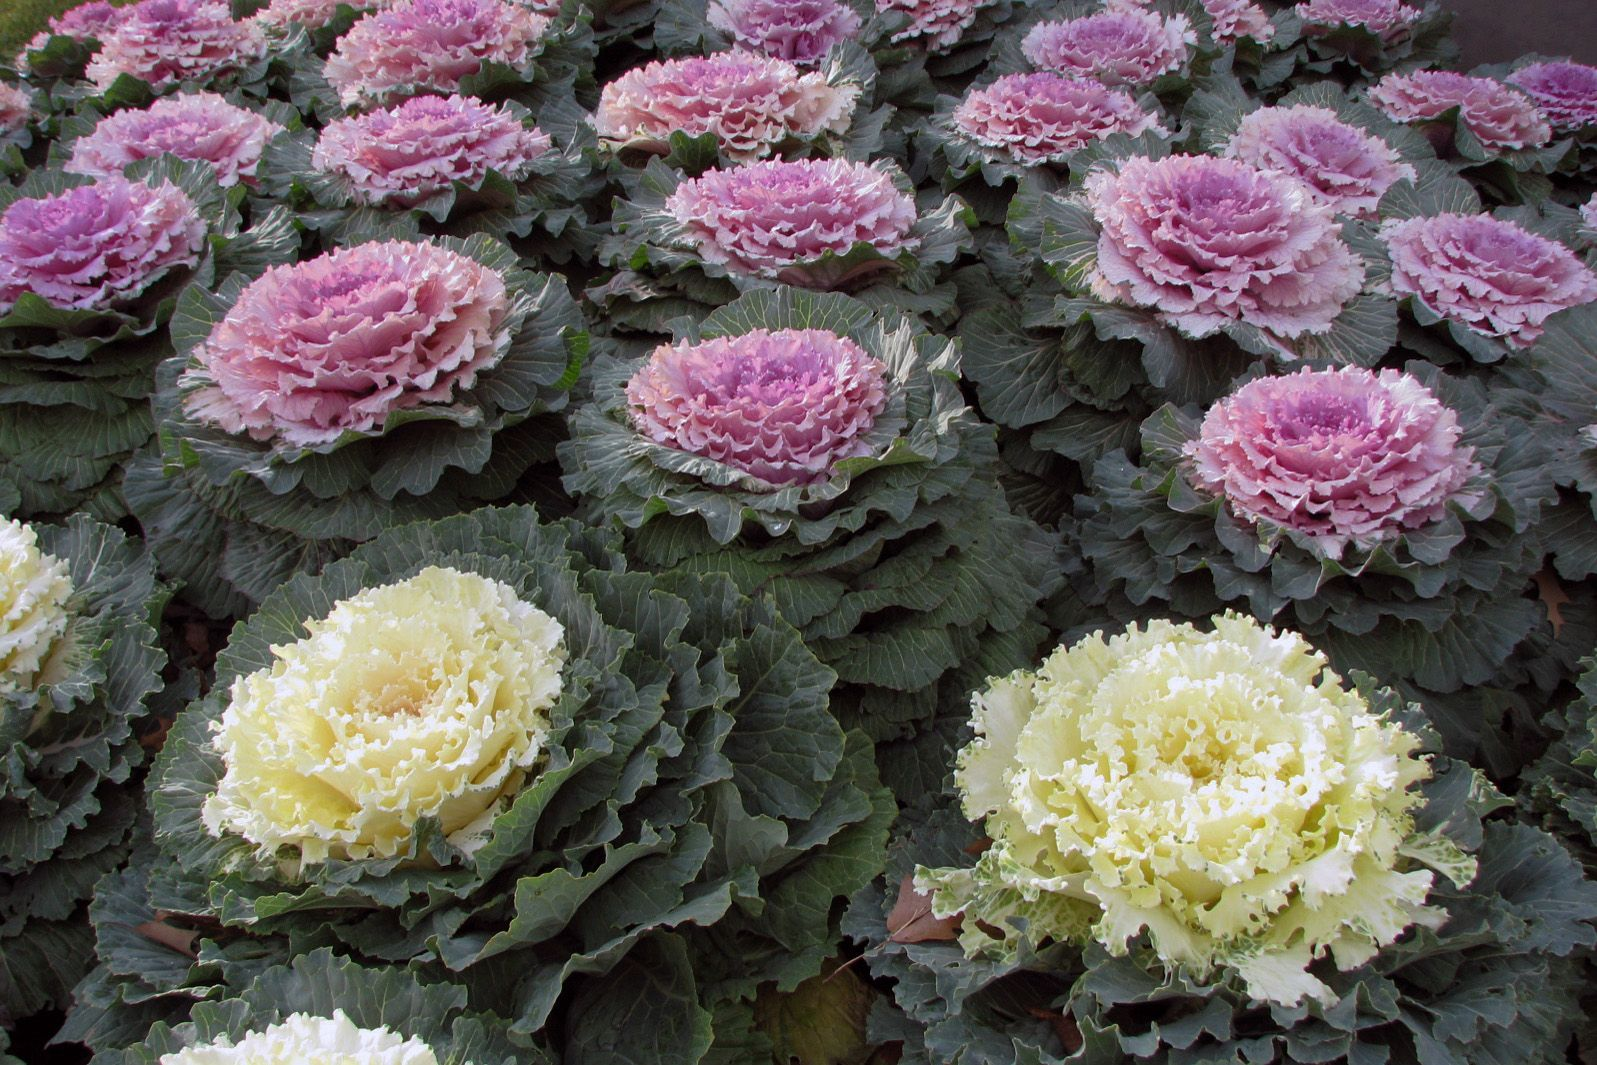 Autumn S Ornamental Kales And Cabbages Watters Garden Center Ornamental Cabbage Ornamental Kale Flowering Kale